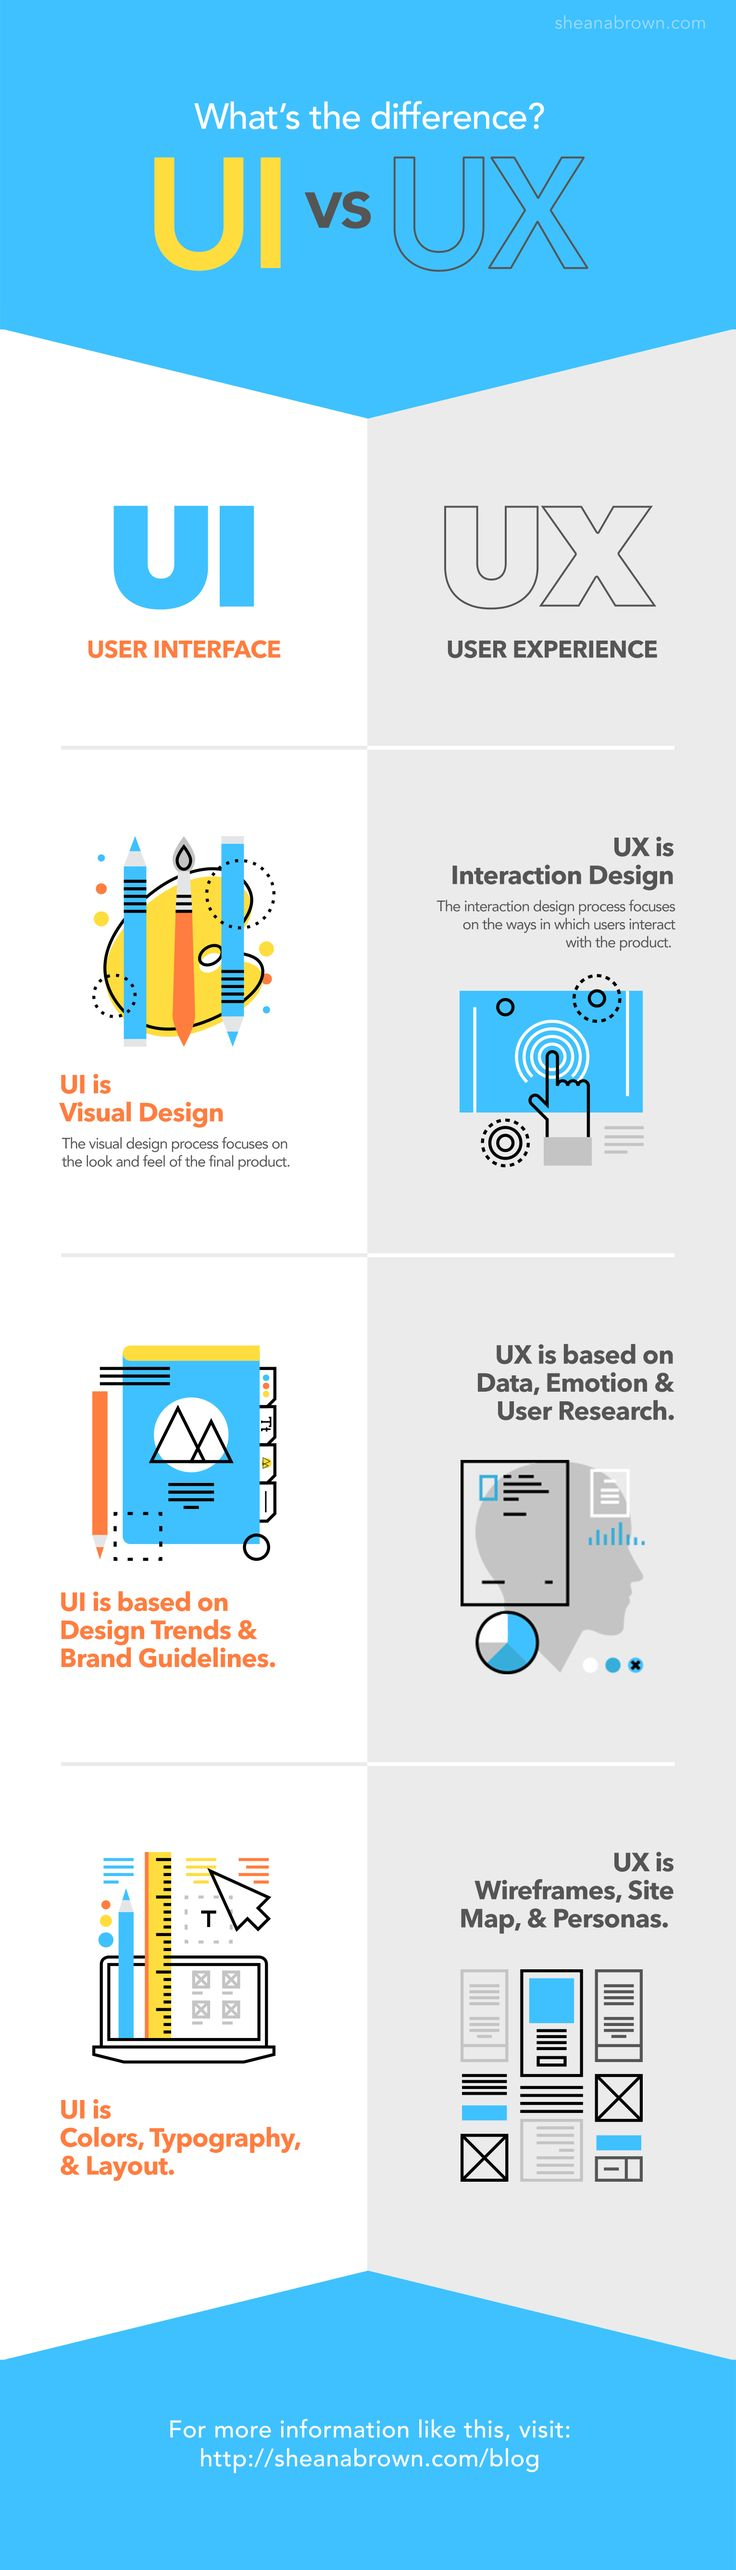 User Interface vs User Experience (UX) Design